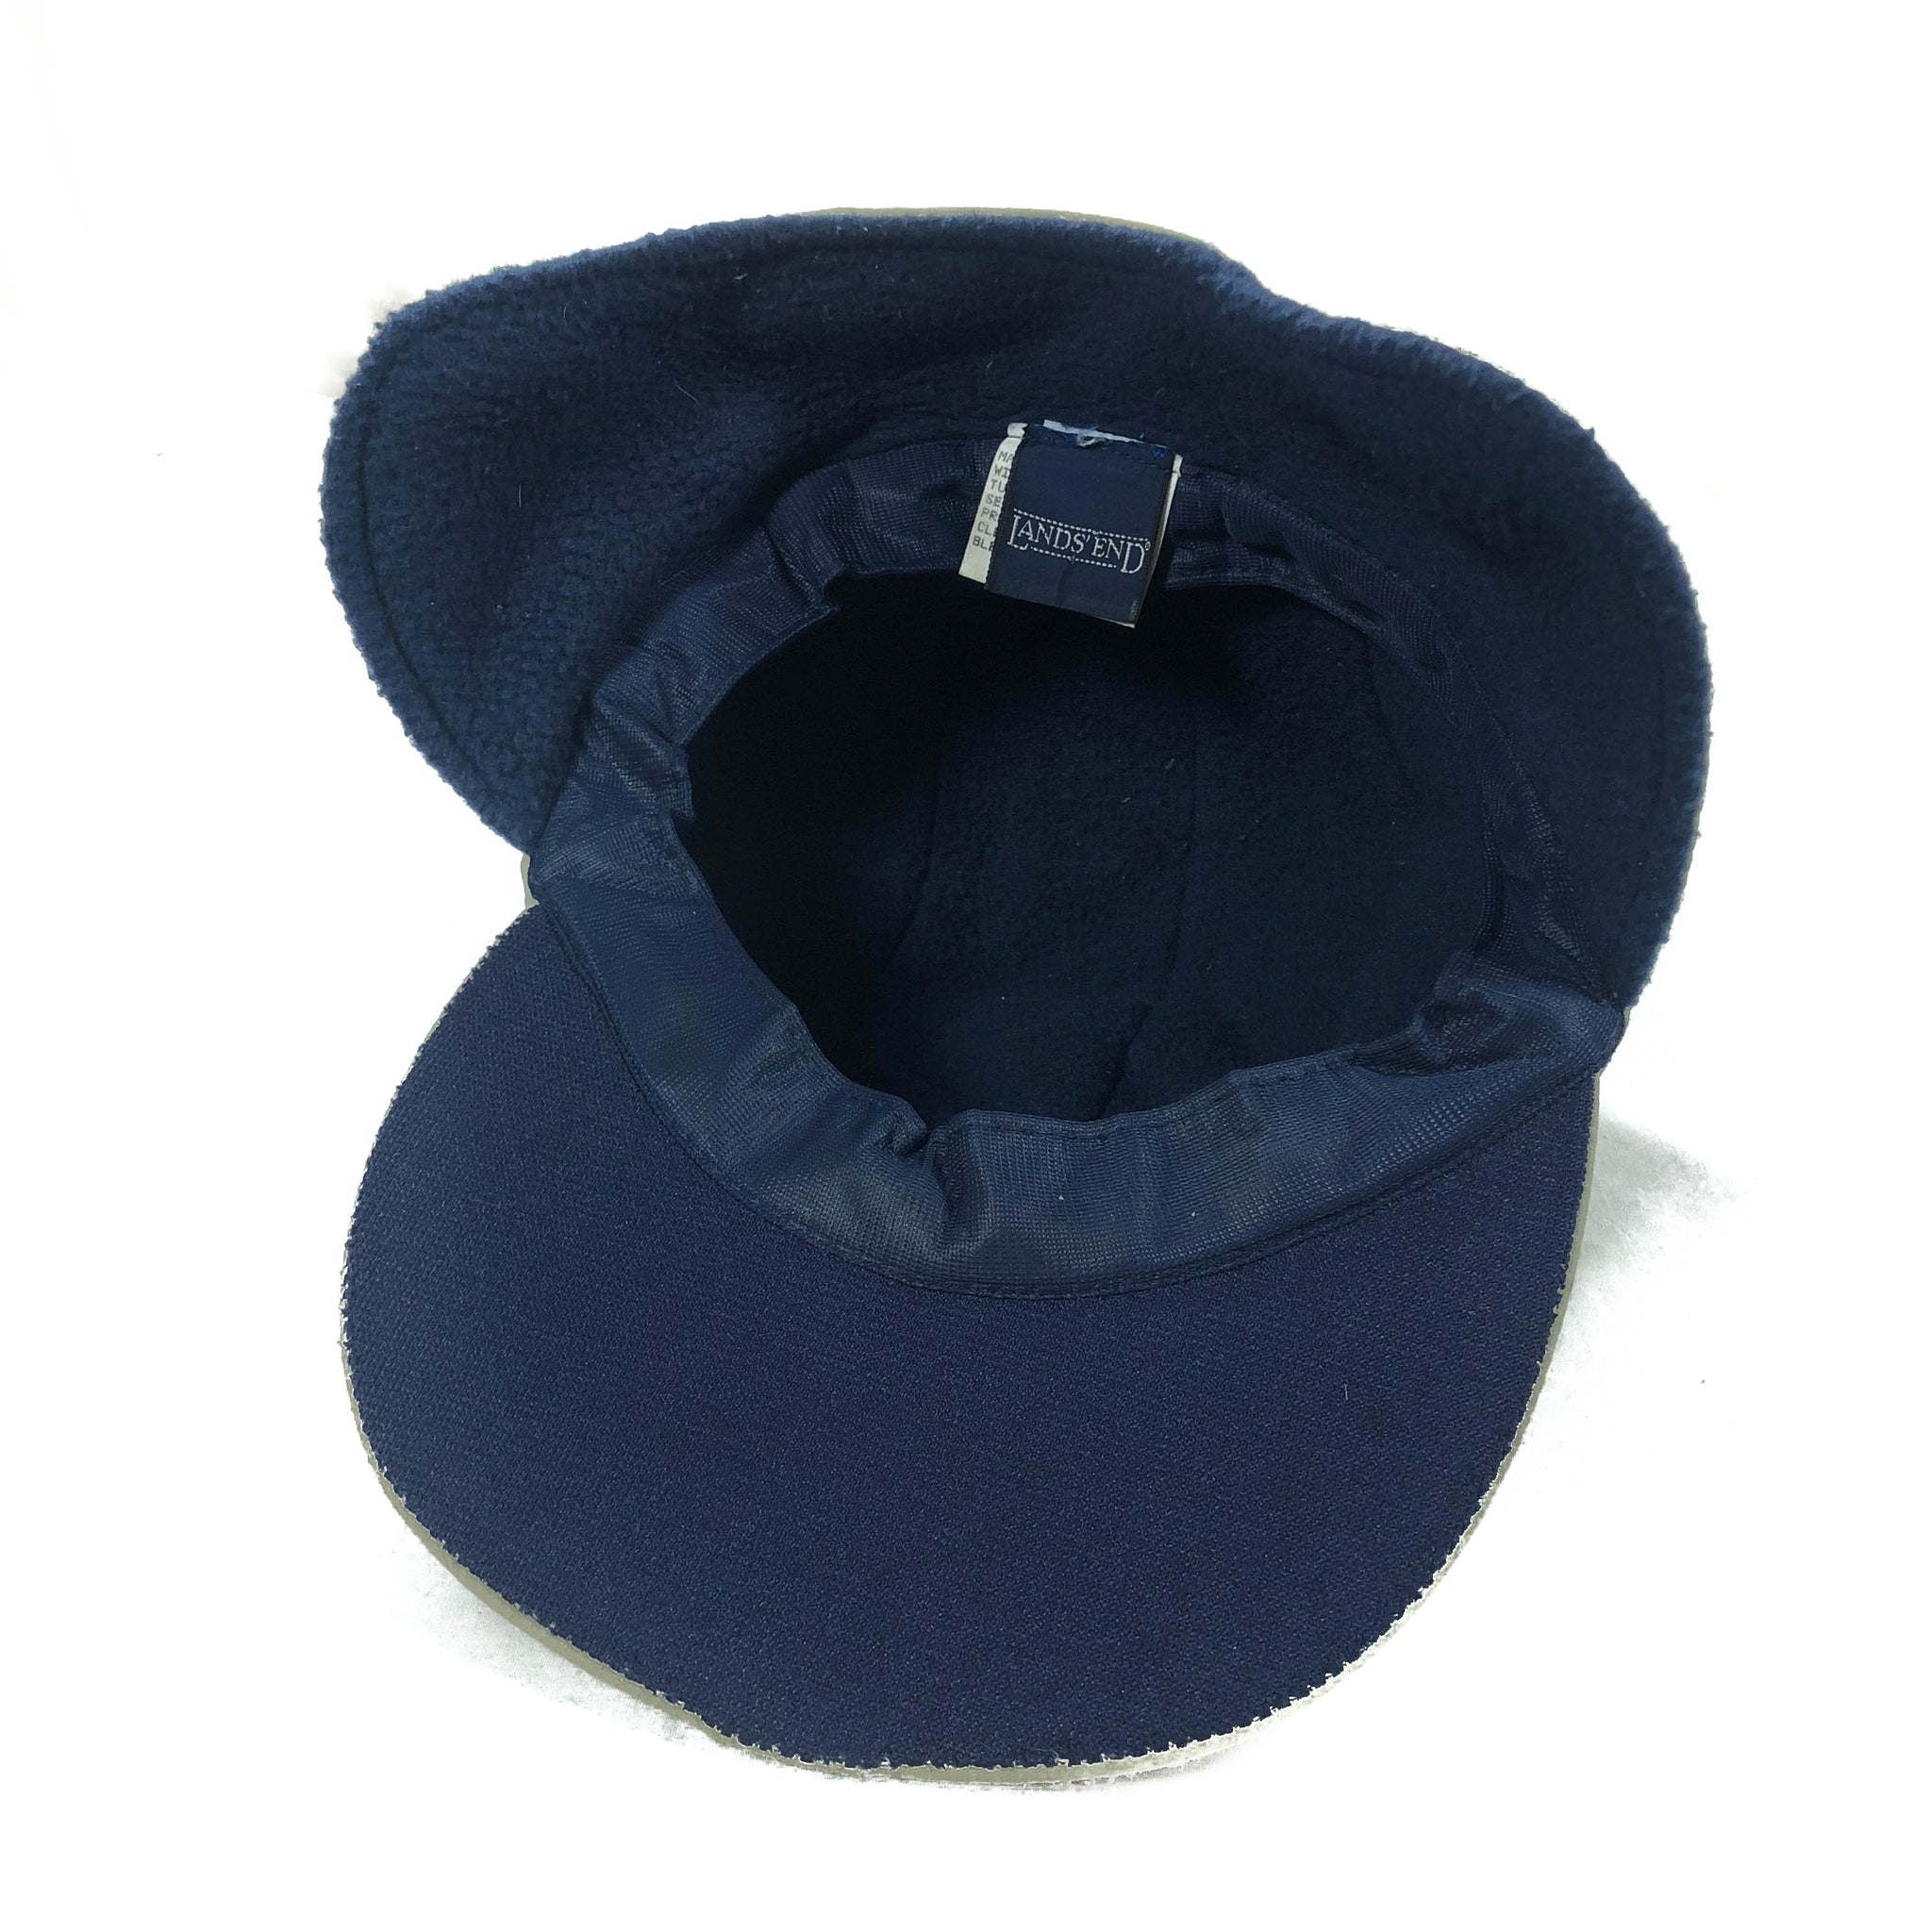 Land's End fleece lined nylon 5 panel hat size s/m